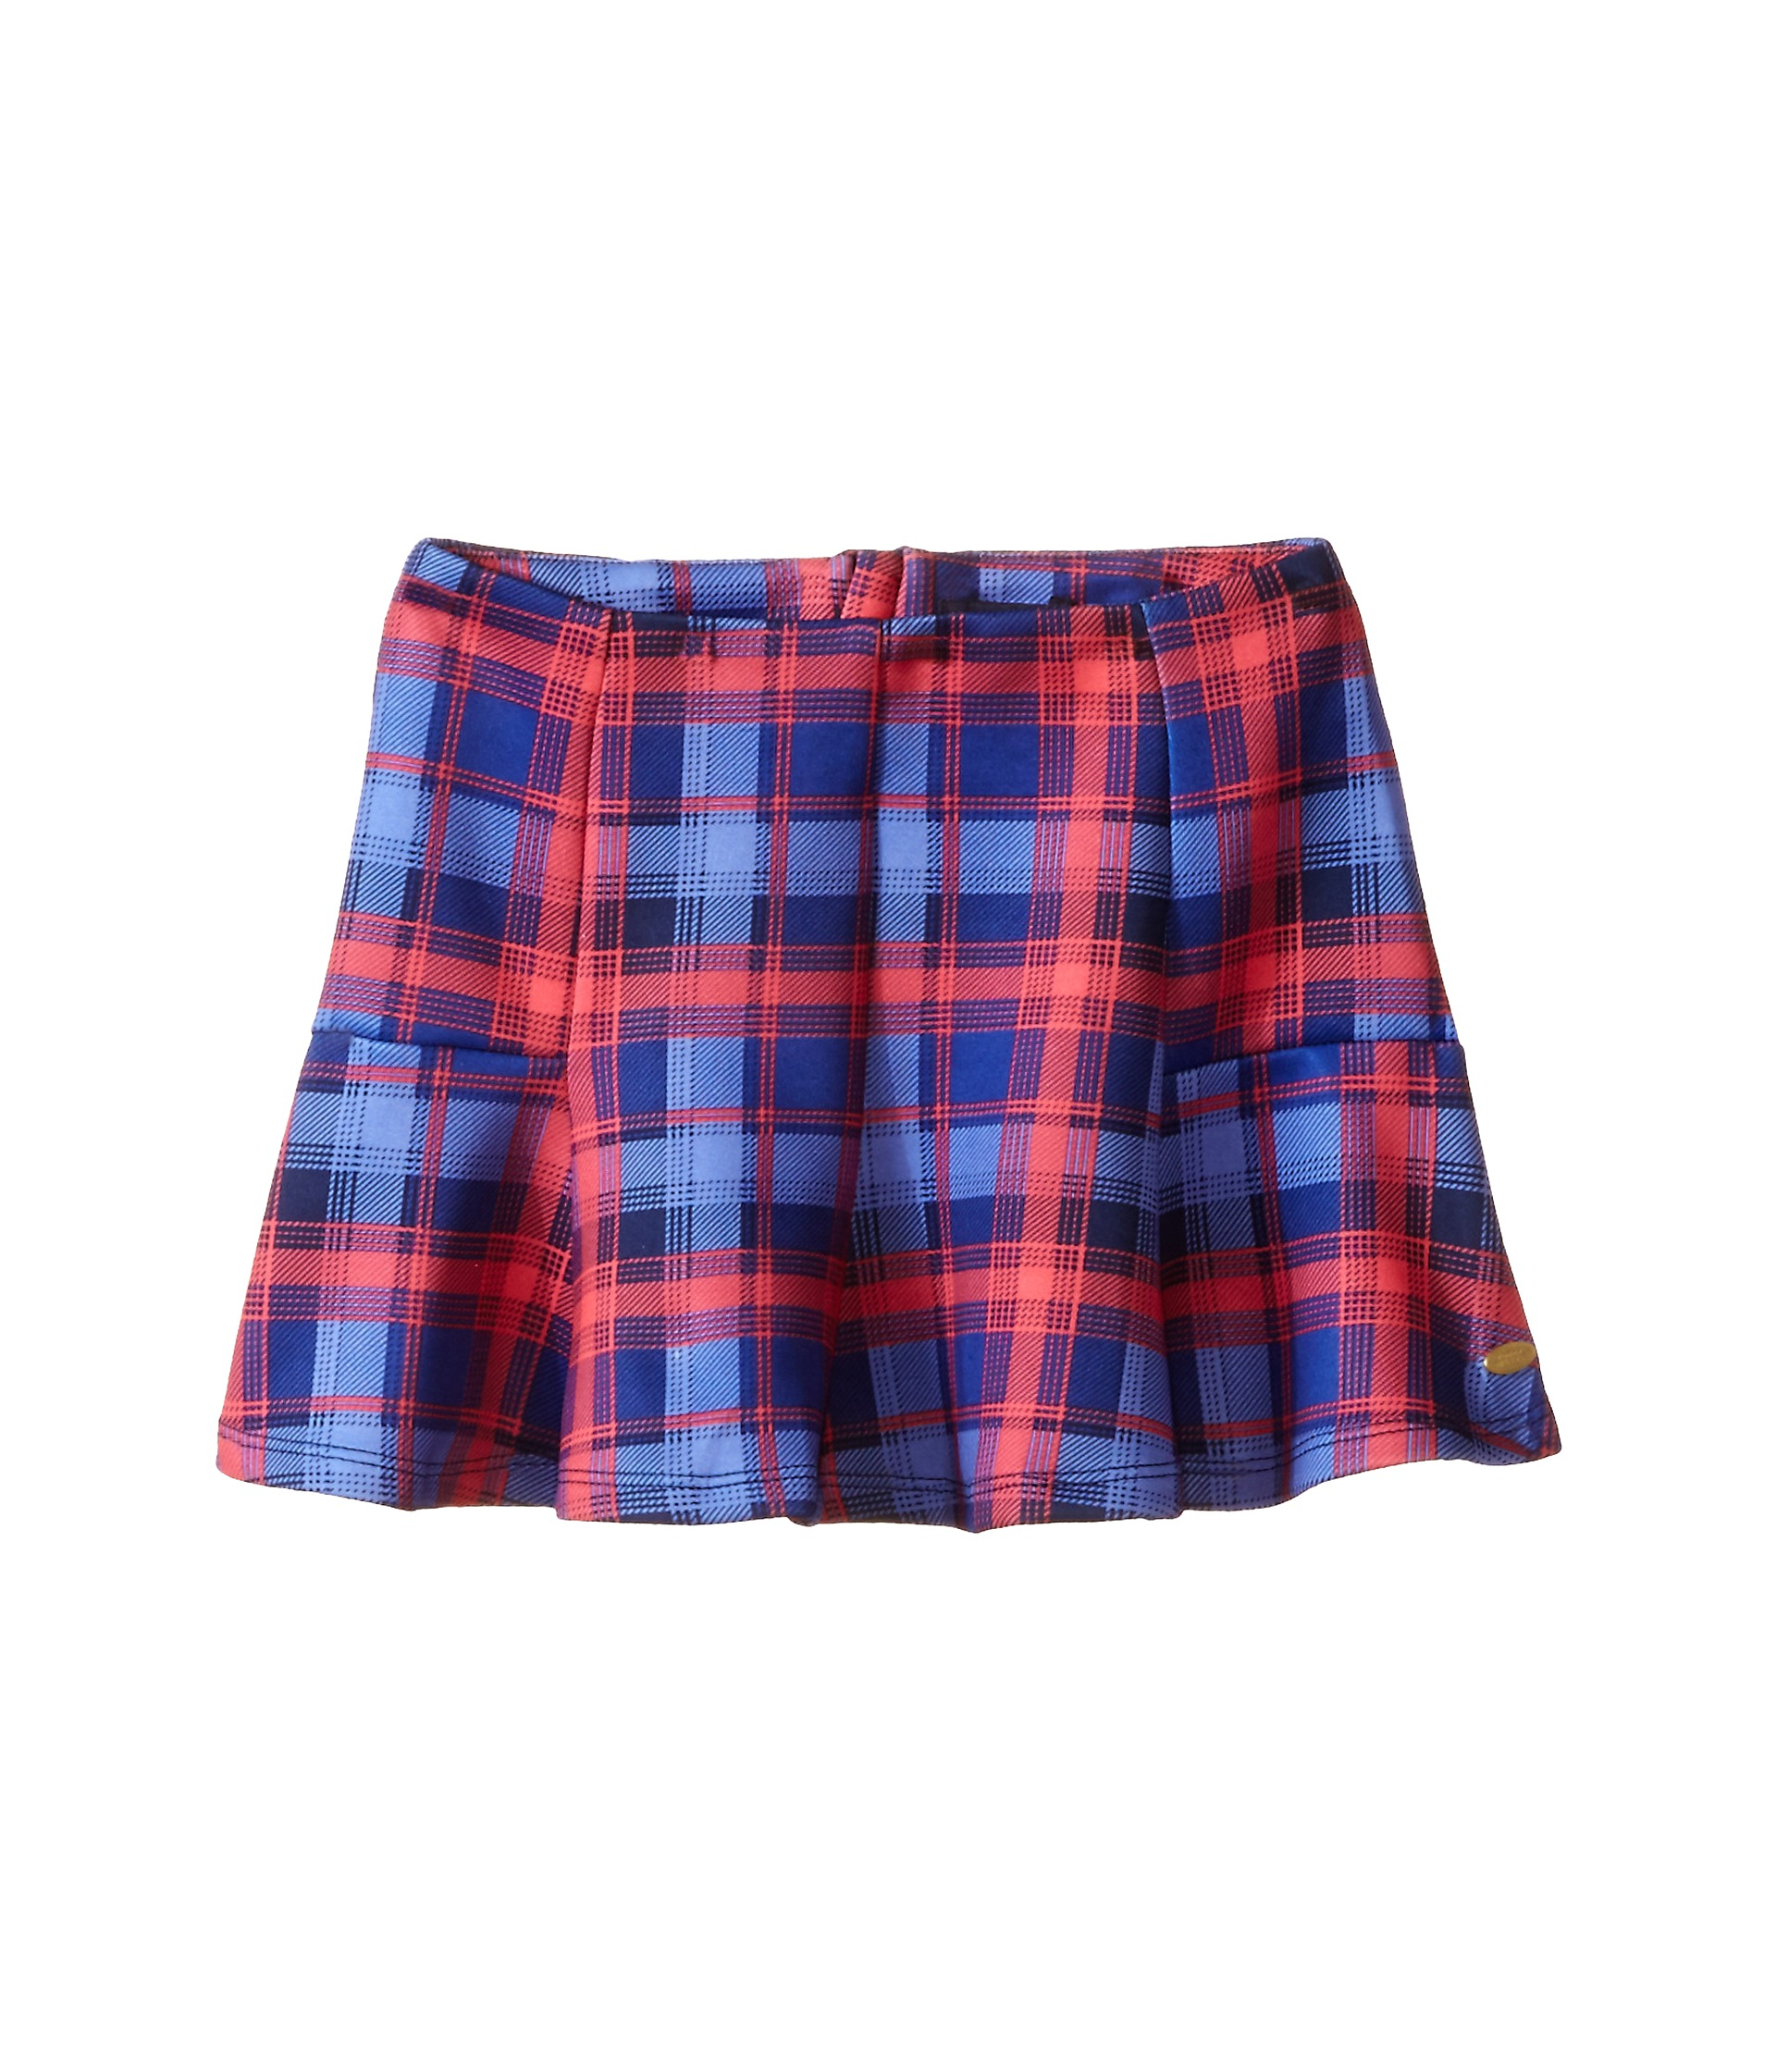 Shop for girls red plaid skirt online at Target. Free shipping on purchases over $35 and save 5% every day with your Target REDcard.